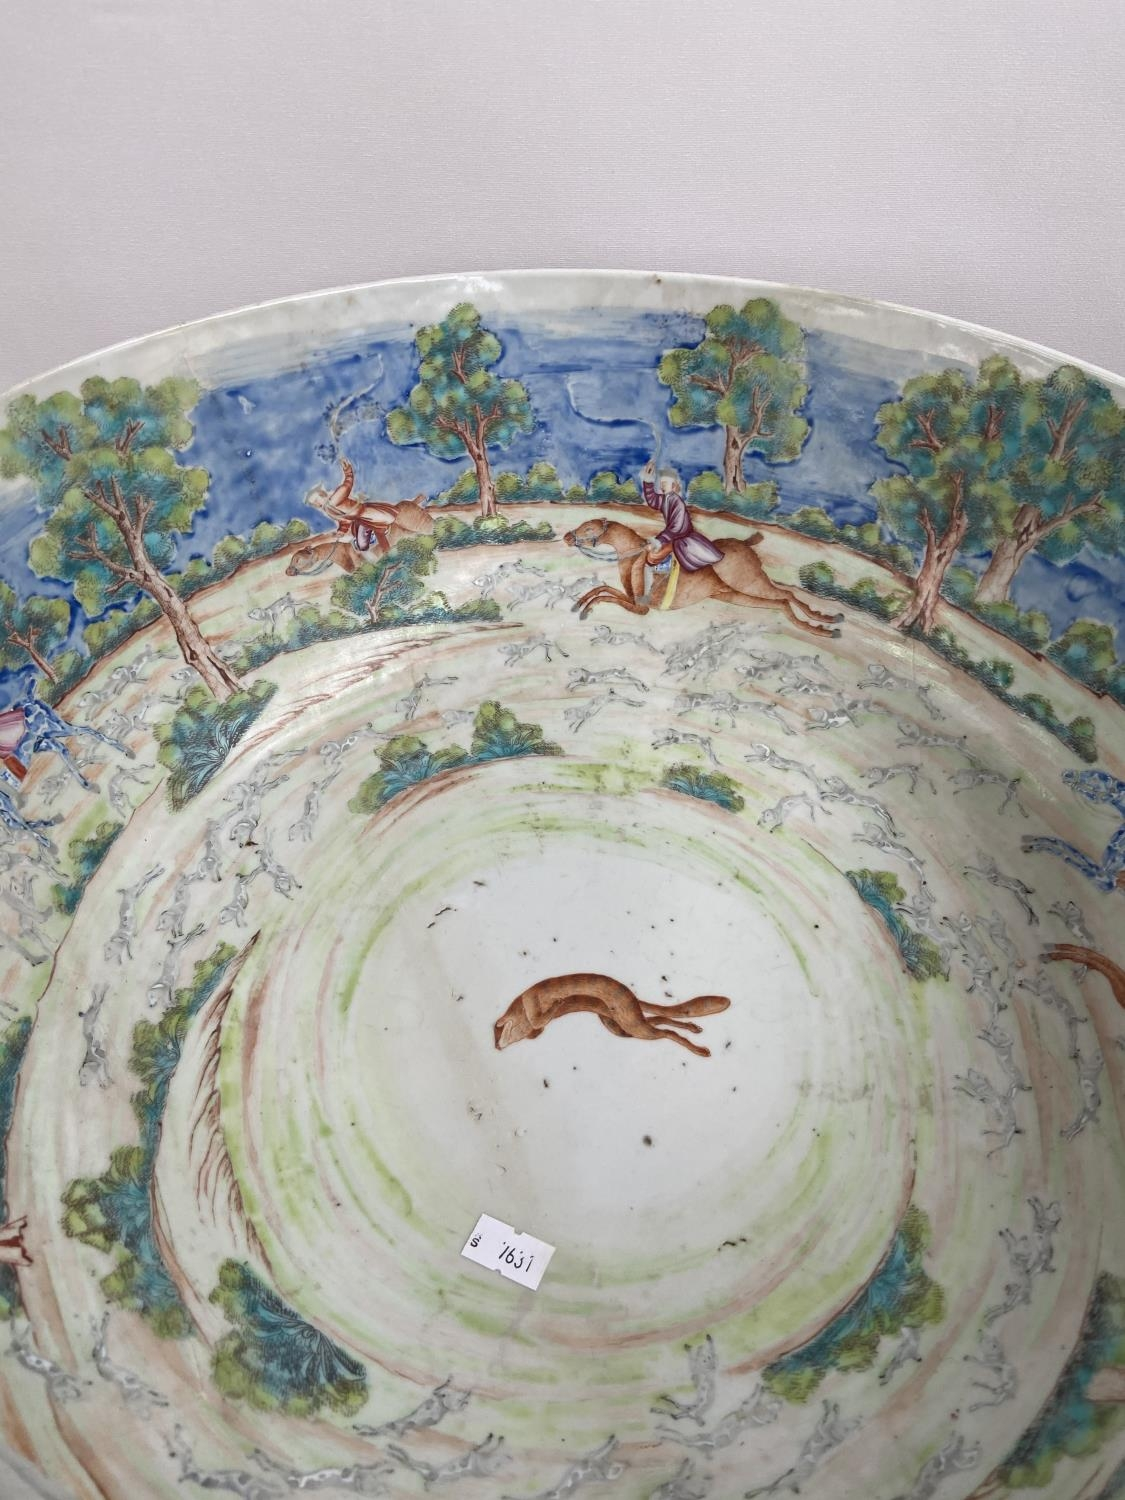 A LARGE 19TH CENTURY CHINESE HAND PAINTED BOWL. EXTERIOR DEPICTS CHINESE HUNTING SCENE PANELS. THE - Image 17 of 39